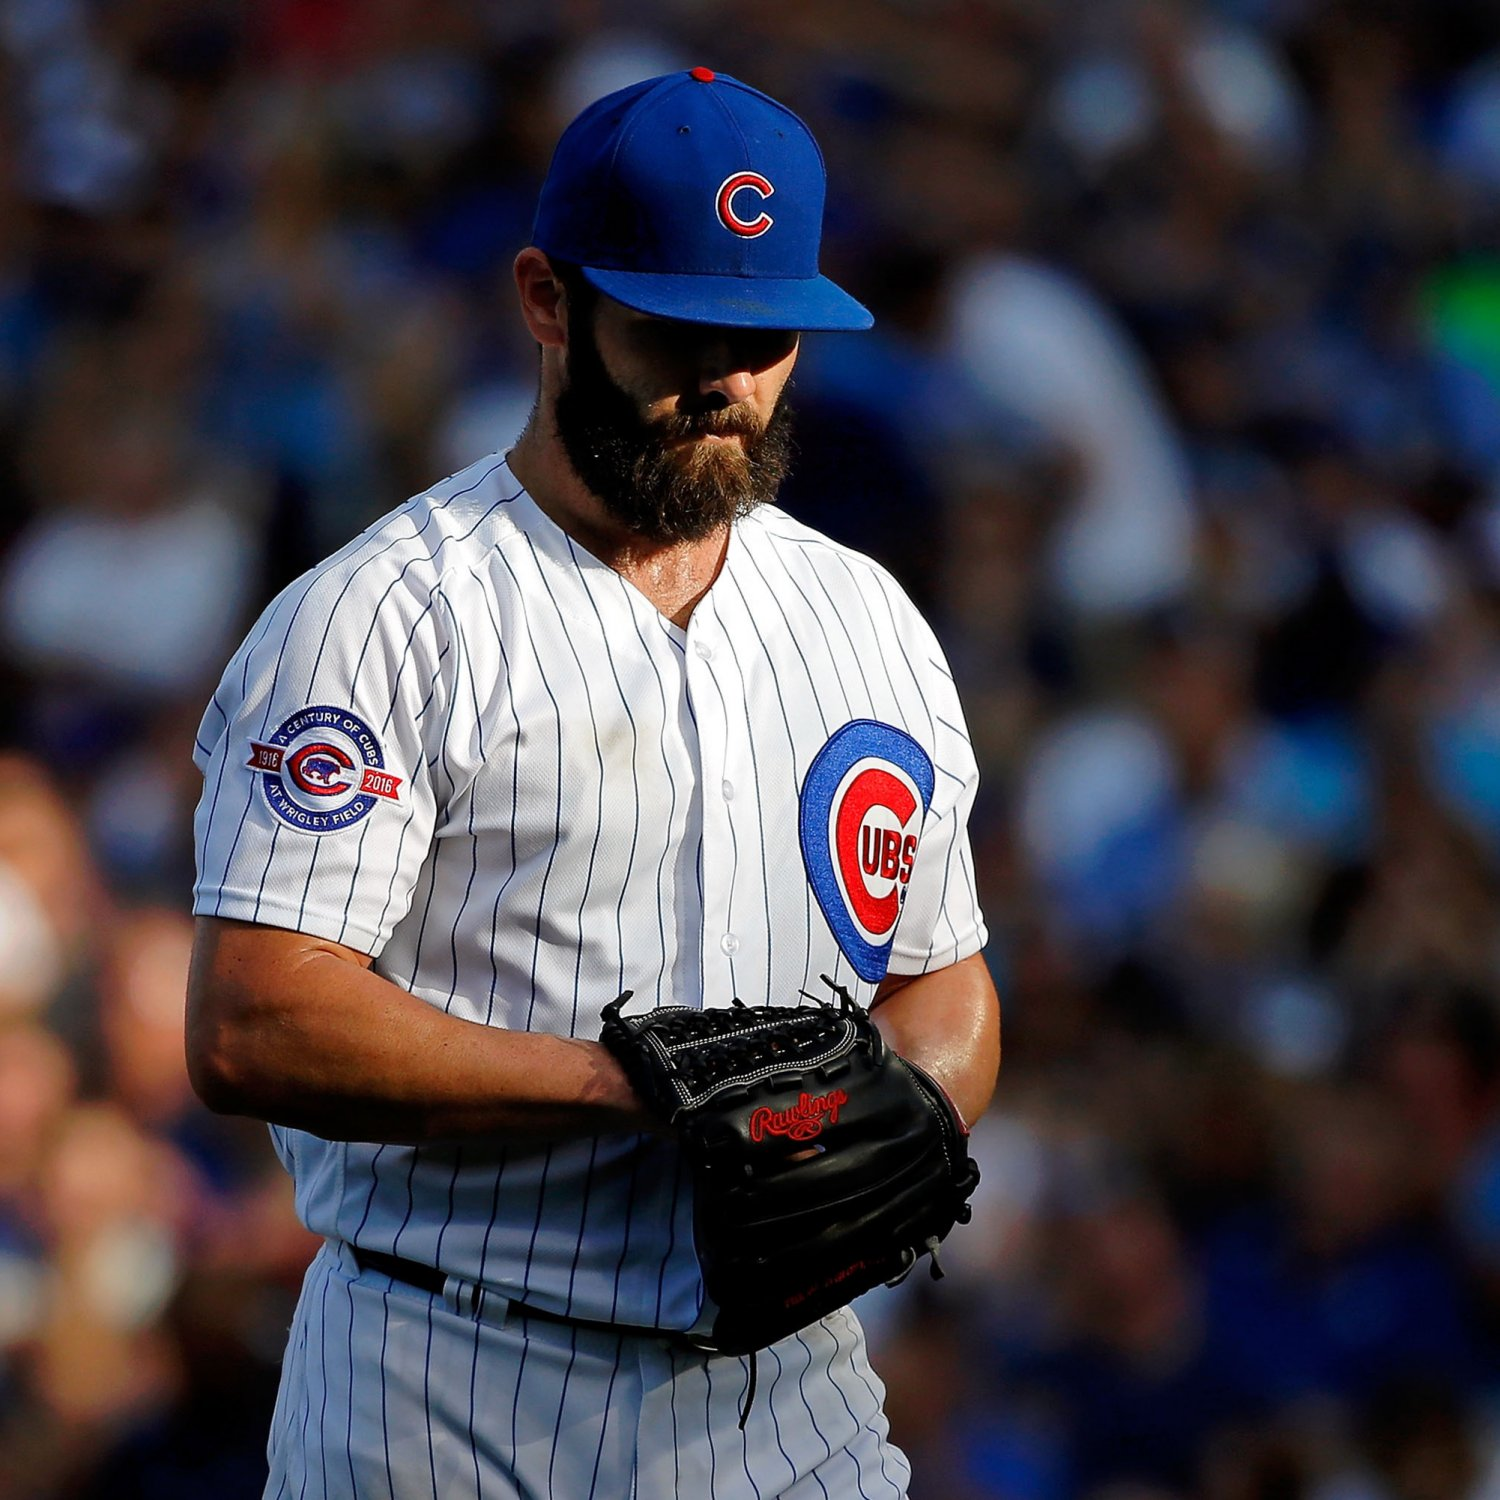 Jake Arrieta Has Gone from NL Cy Young Winner to Just Another Guy | Bleacher Report